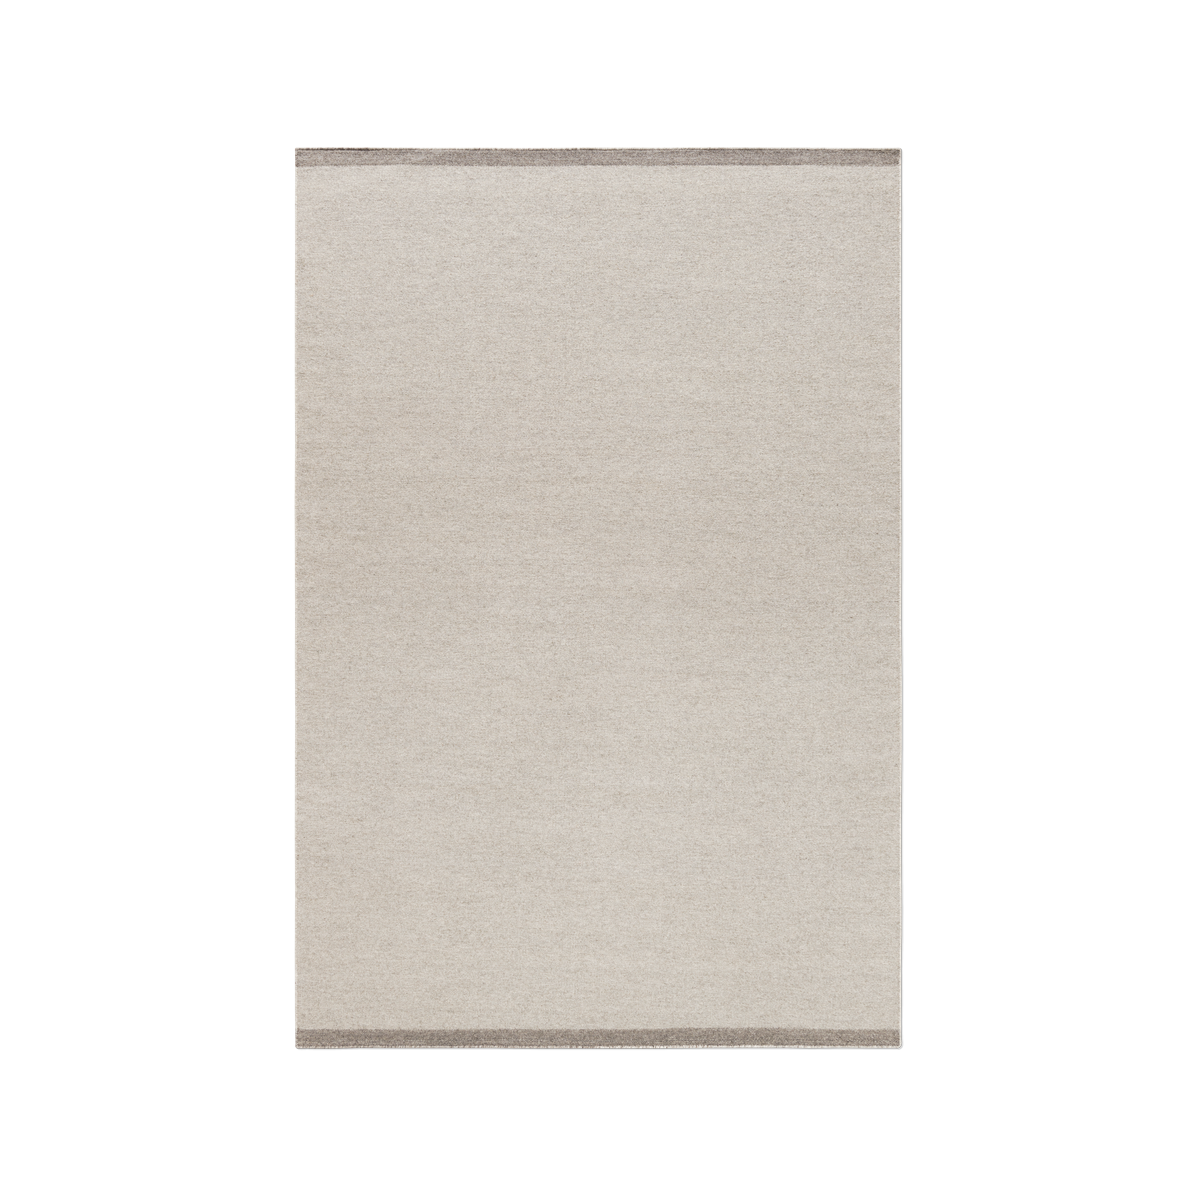 Product image of the flatweave rug Zero in color Warm Gray. The rug has two darker borders at the short sides.